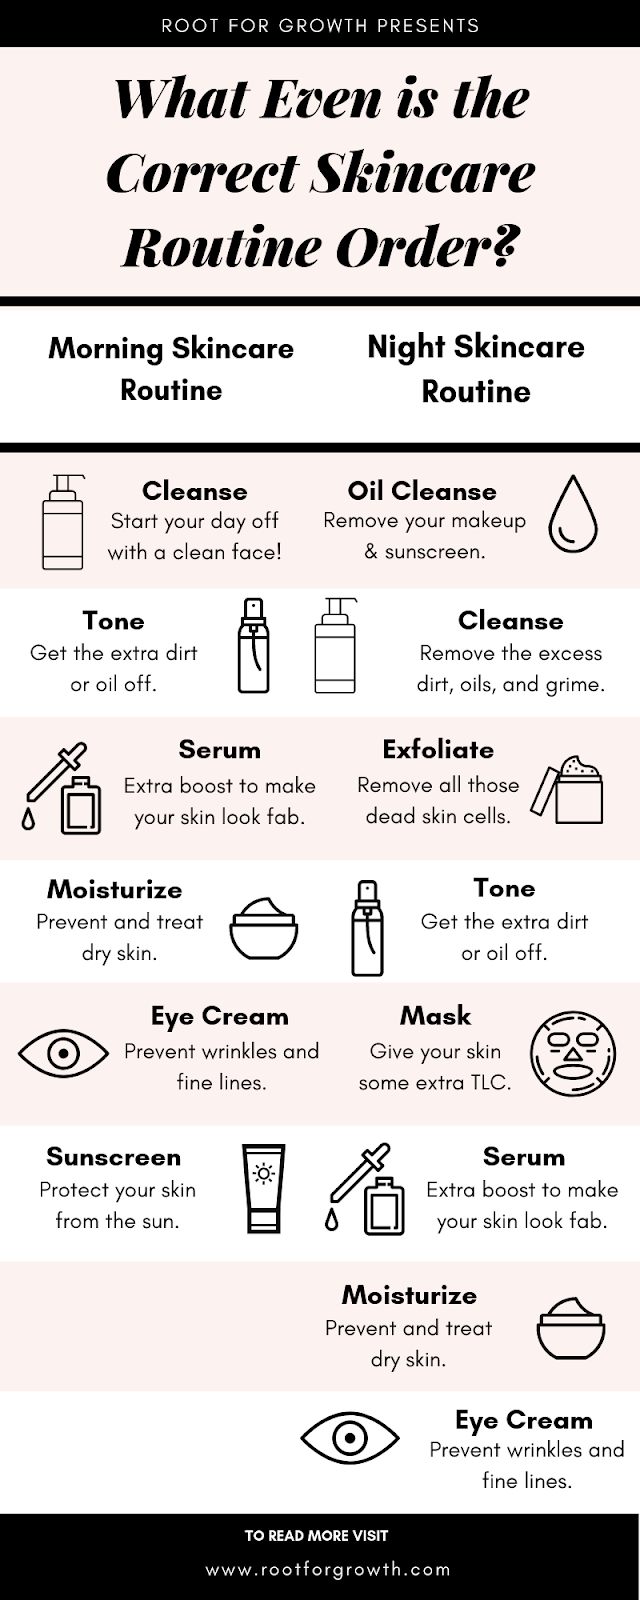 What Even Is The Correct Skincare Routine Order Infographic Skin Care Routine Order Oily Skin Care Routine Night Skin Care Routine